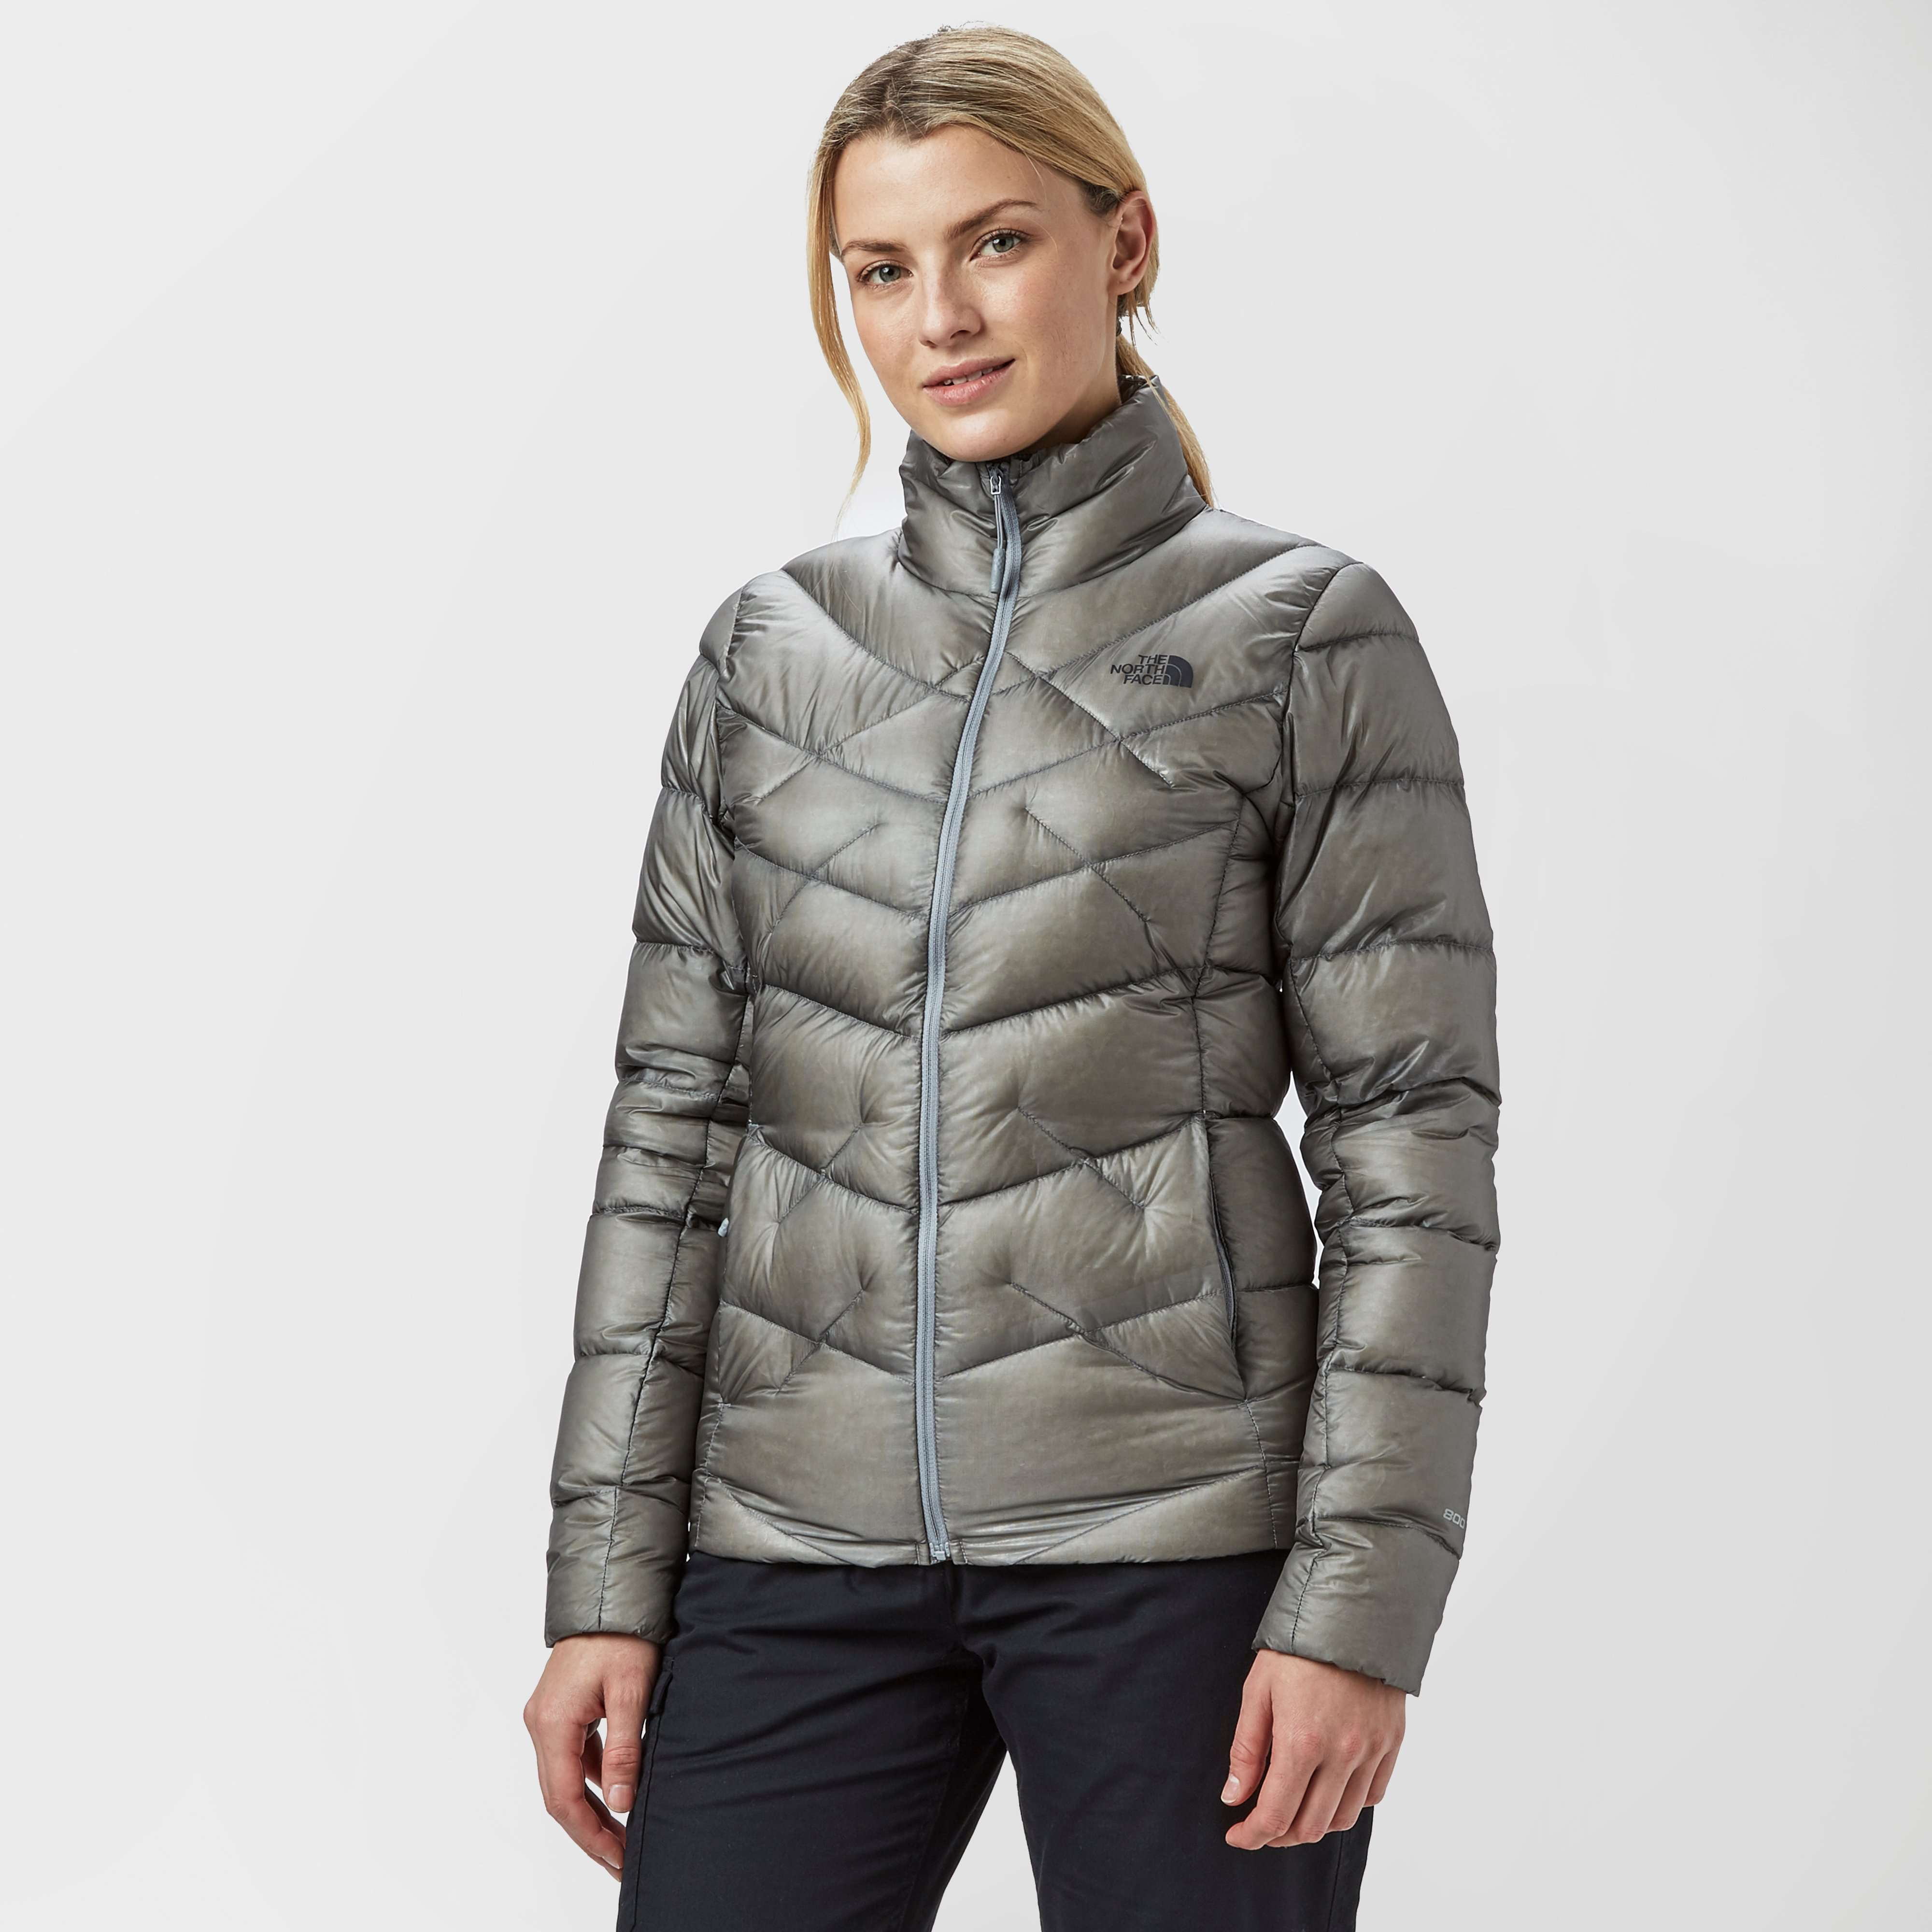 THE NORTH FACE Women's Supercinco Down Jacket